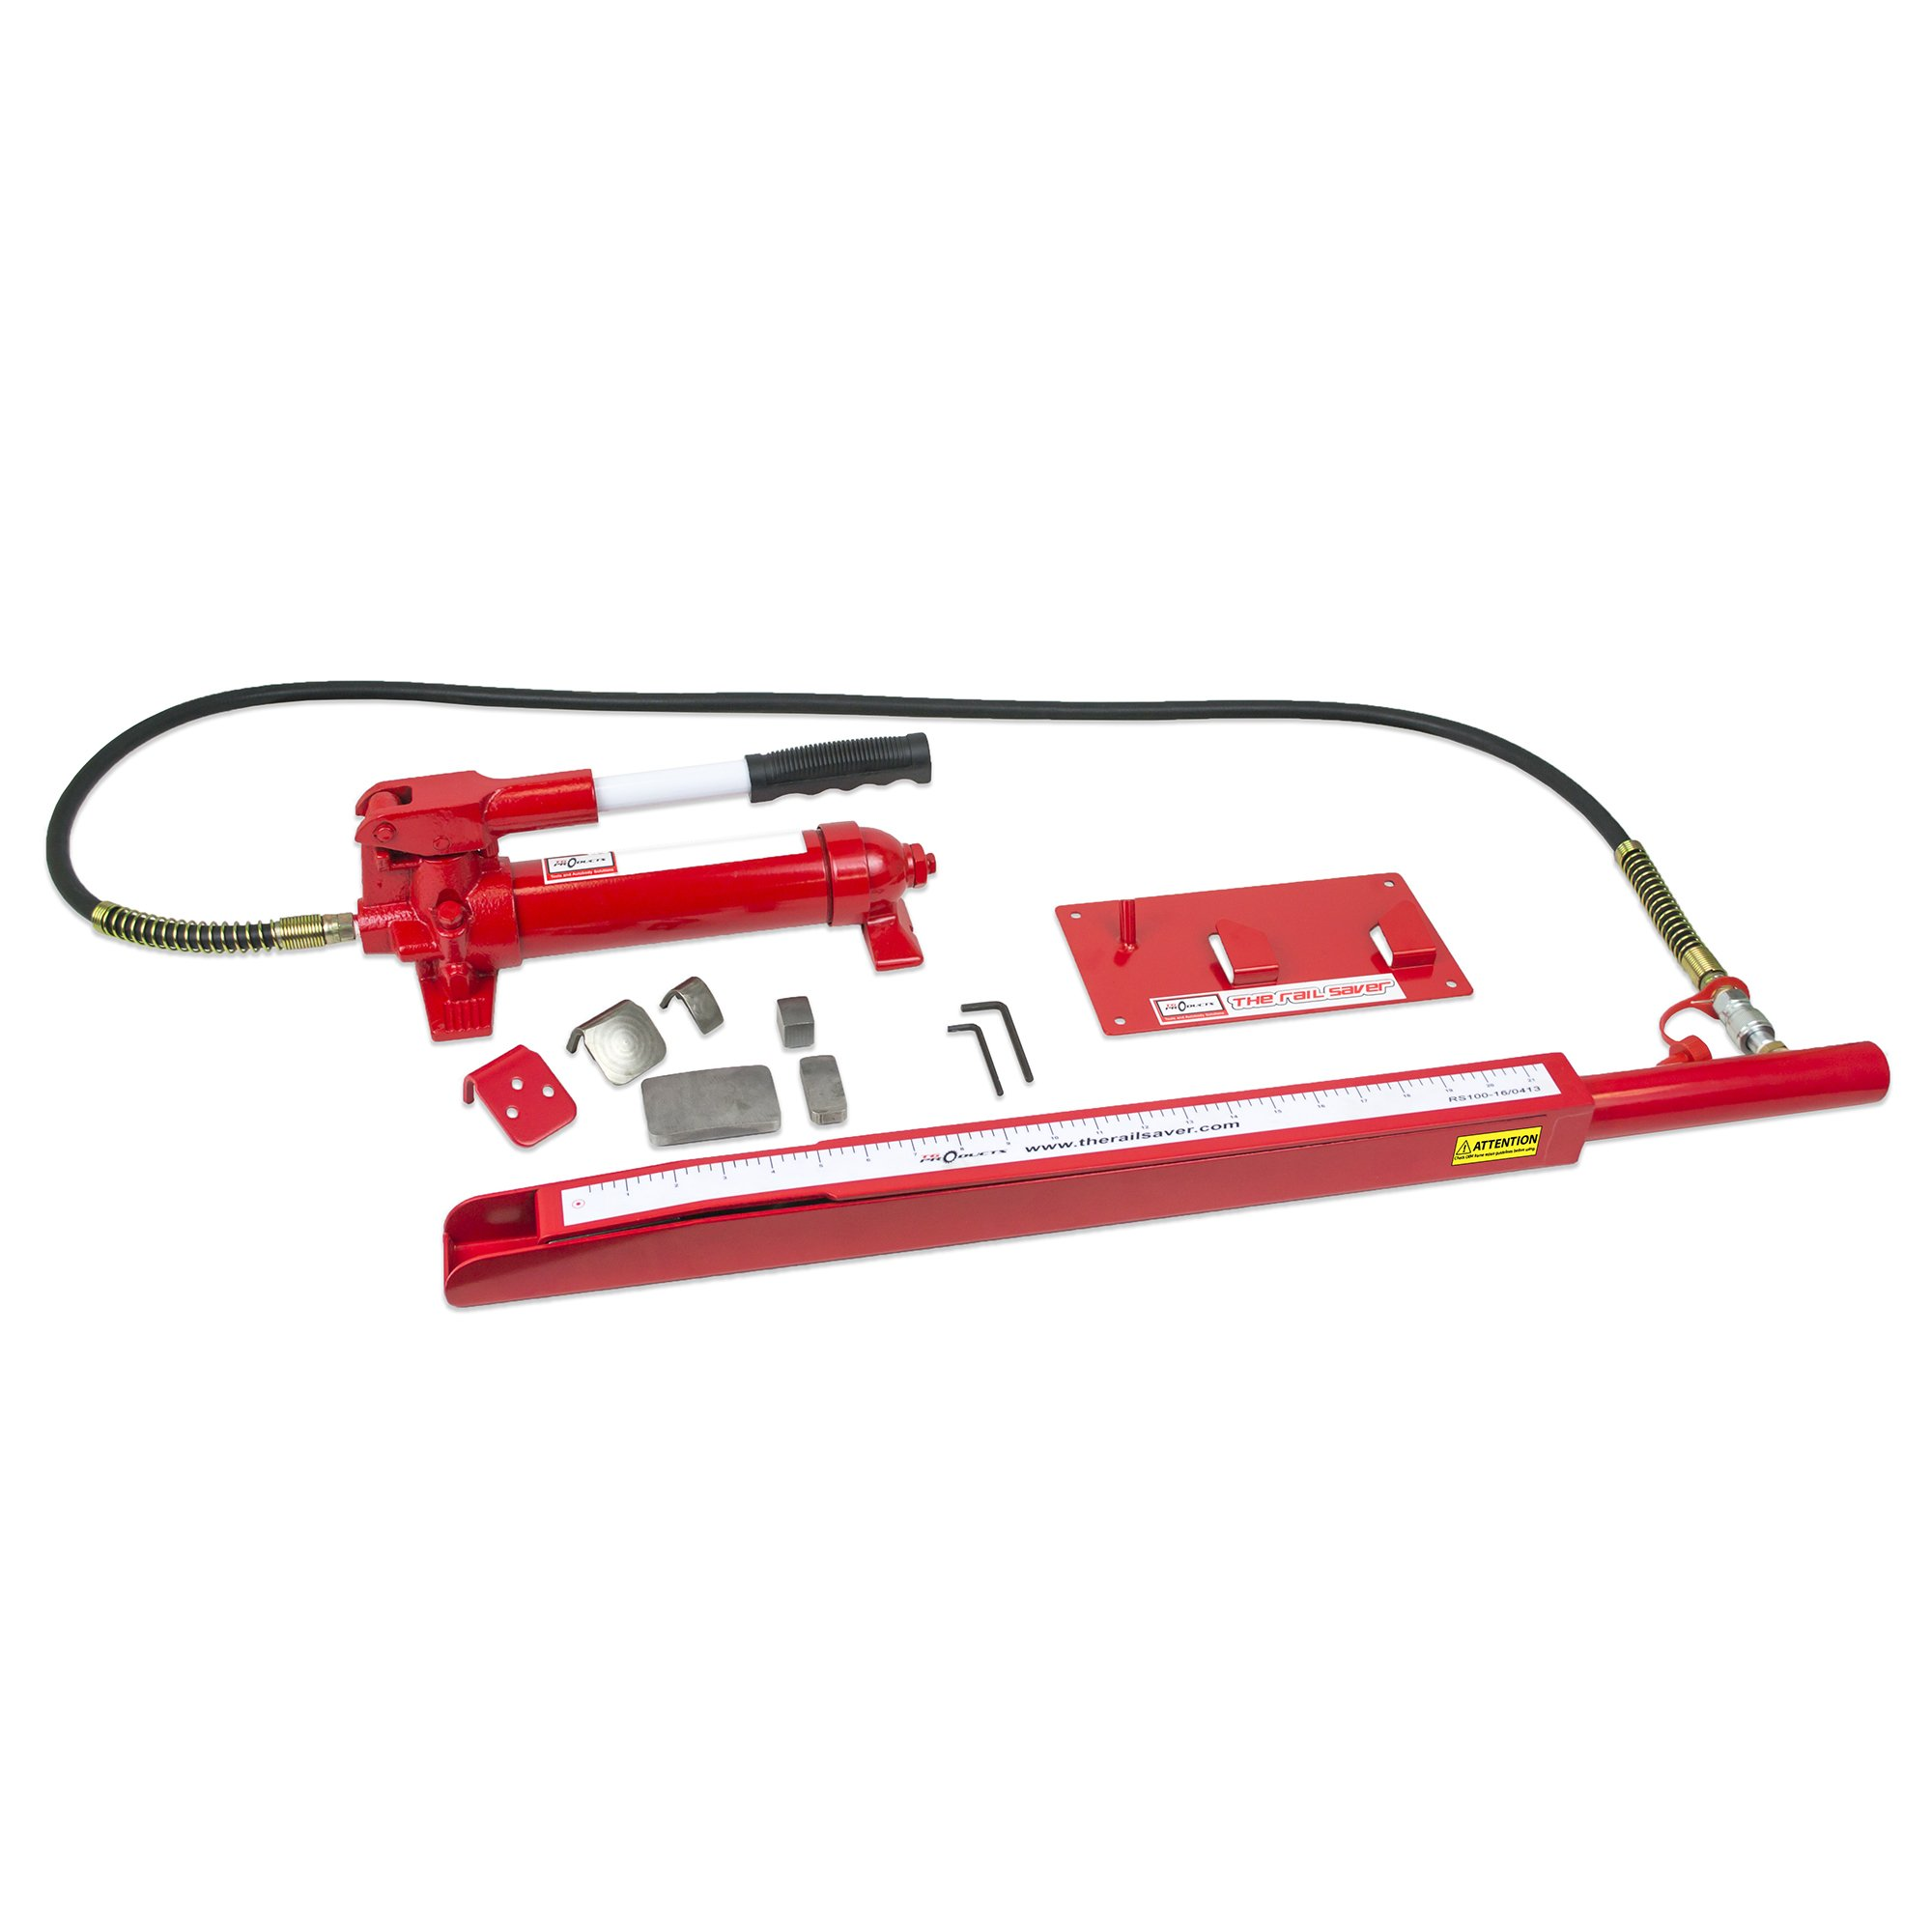 TG Products The Rail Saver Repair System, Accessory Kit, Ram, Case and Wall Bracket (with Pump) by TG Products (Image #1)